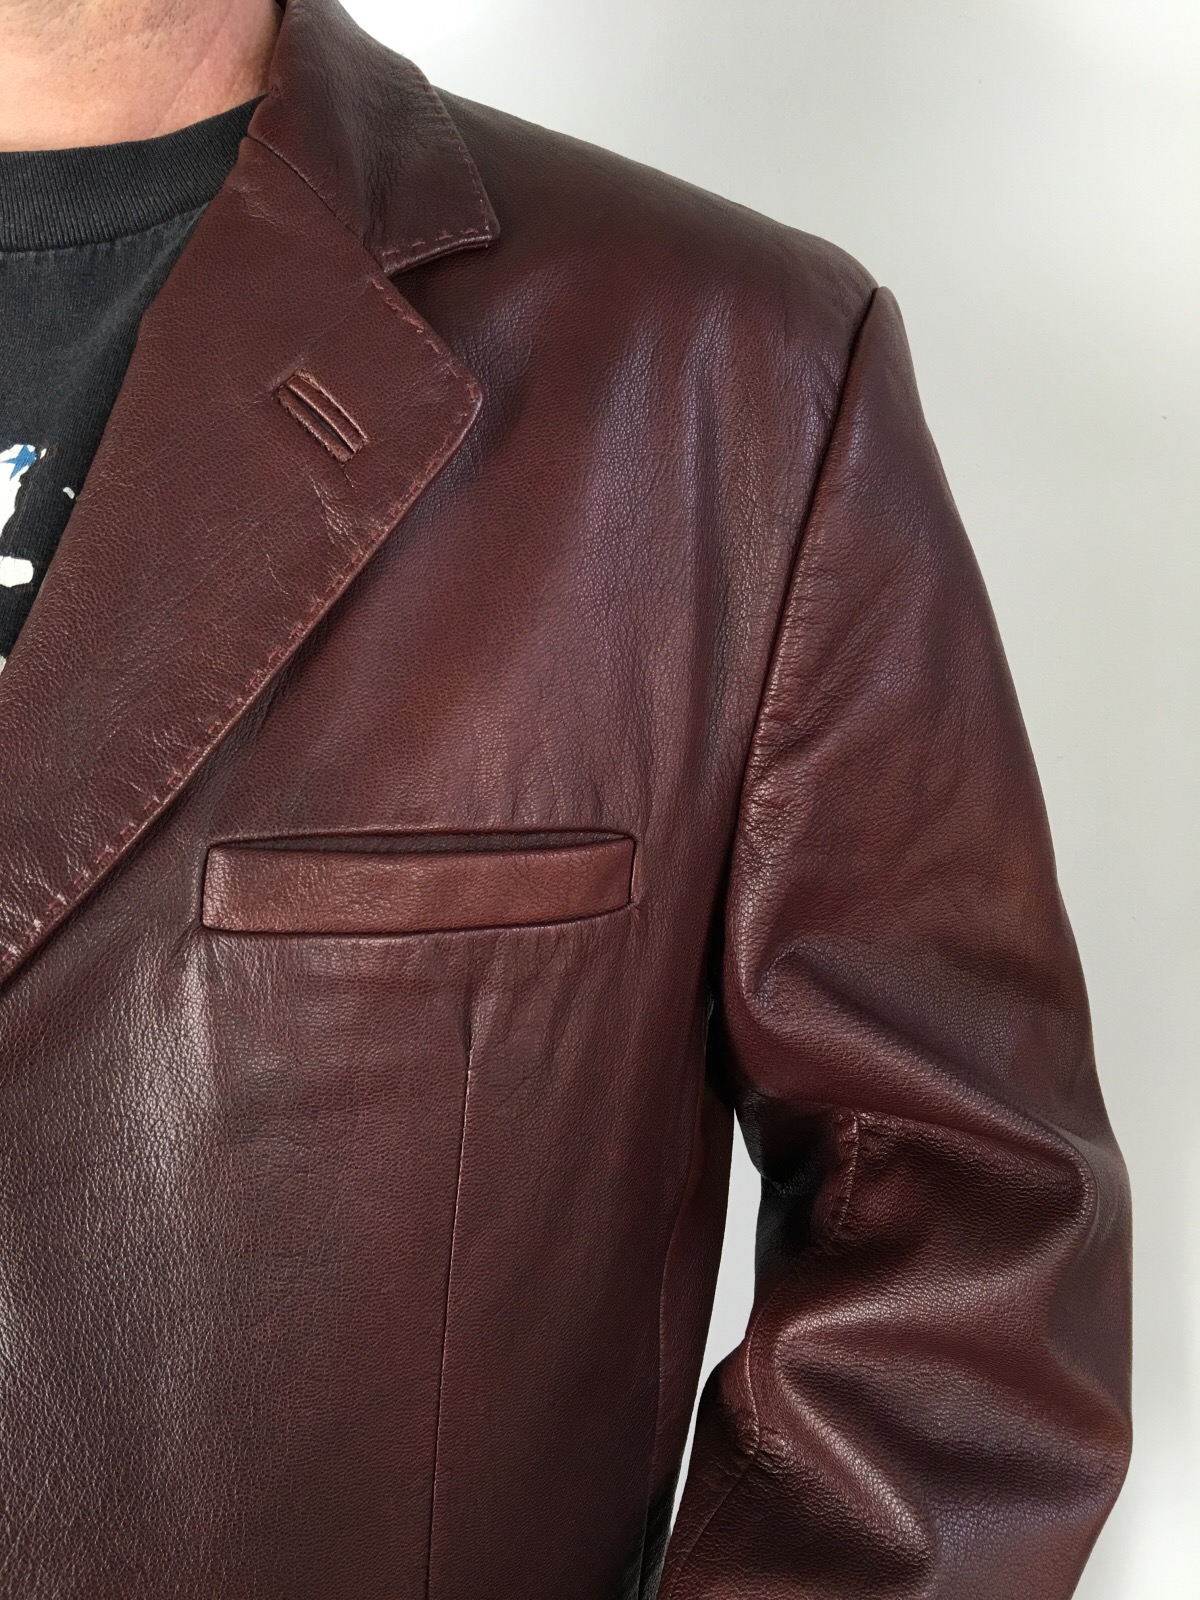 Leather jacket italy - Latini Mens Brown Leather Jacket Made In Italy Coat L 54 44 Usa High Quality